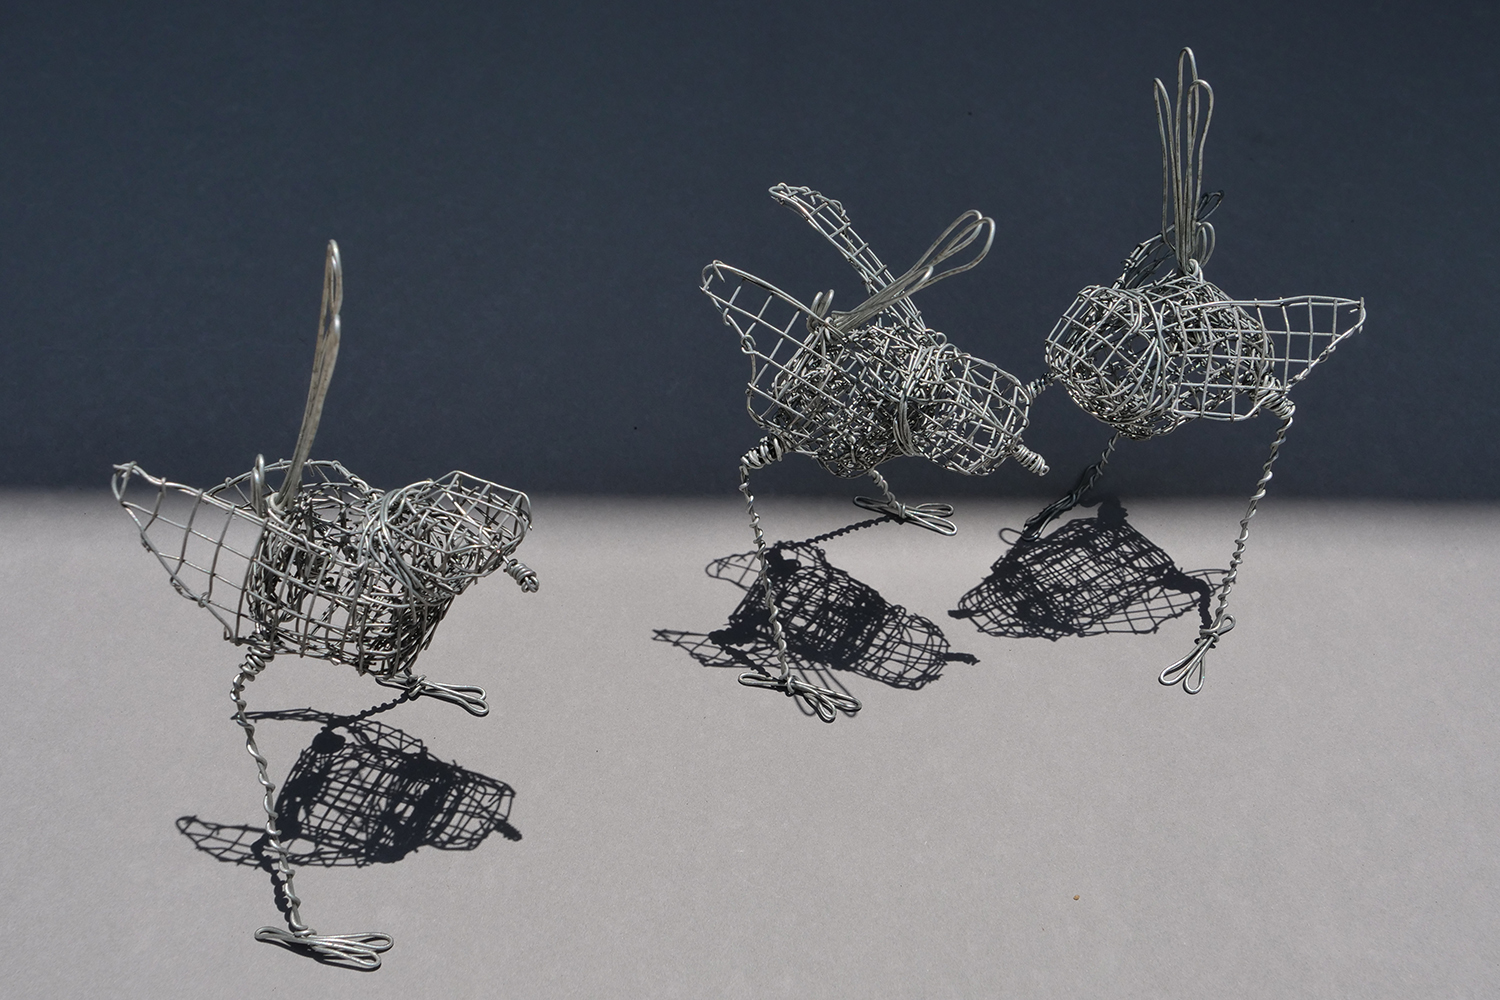 3 Wrens. 3 wire handmade wrens each approximately 13 cm in height and 7 cm wide.